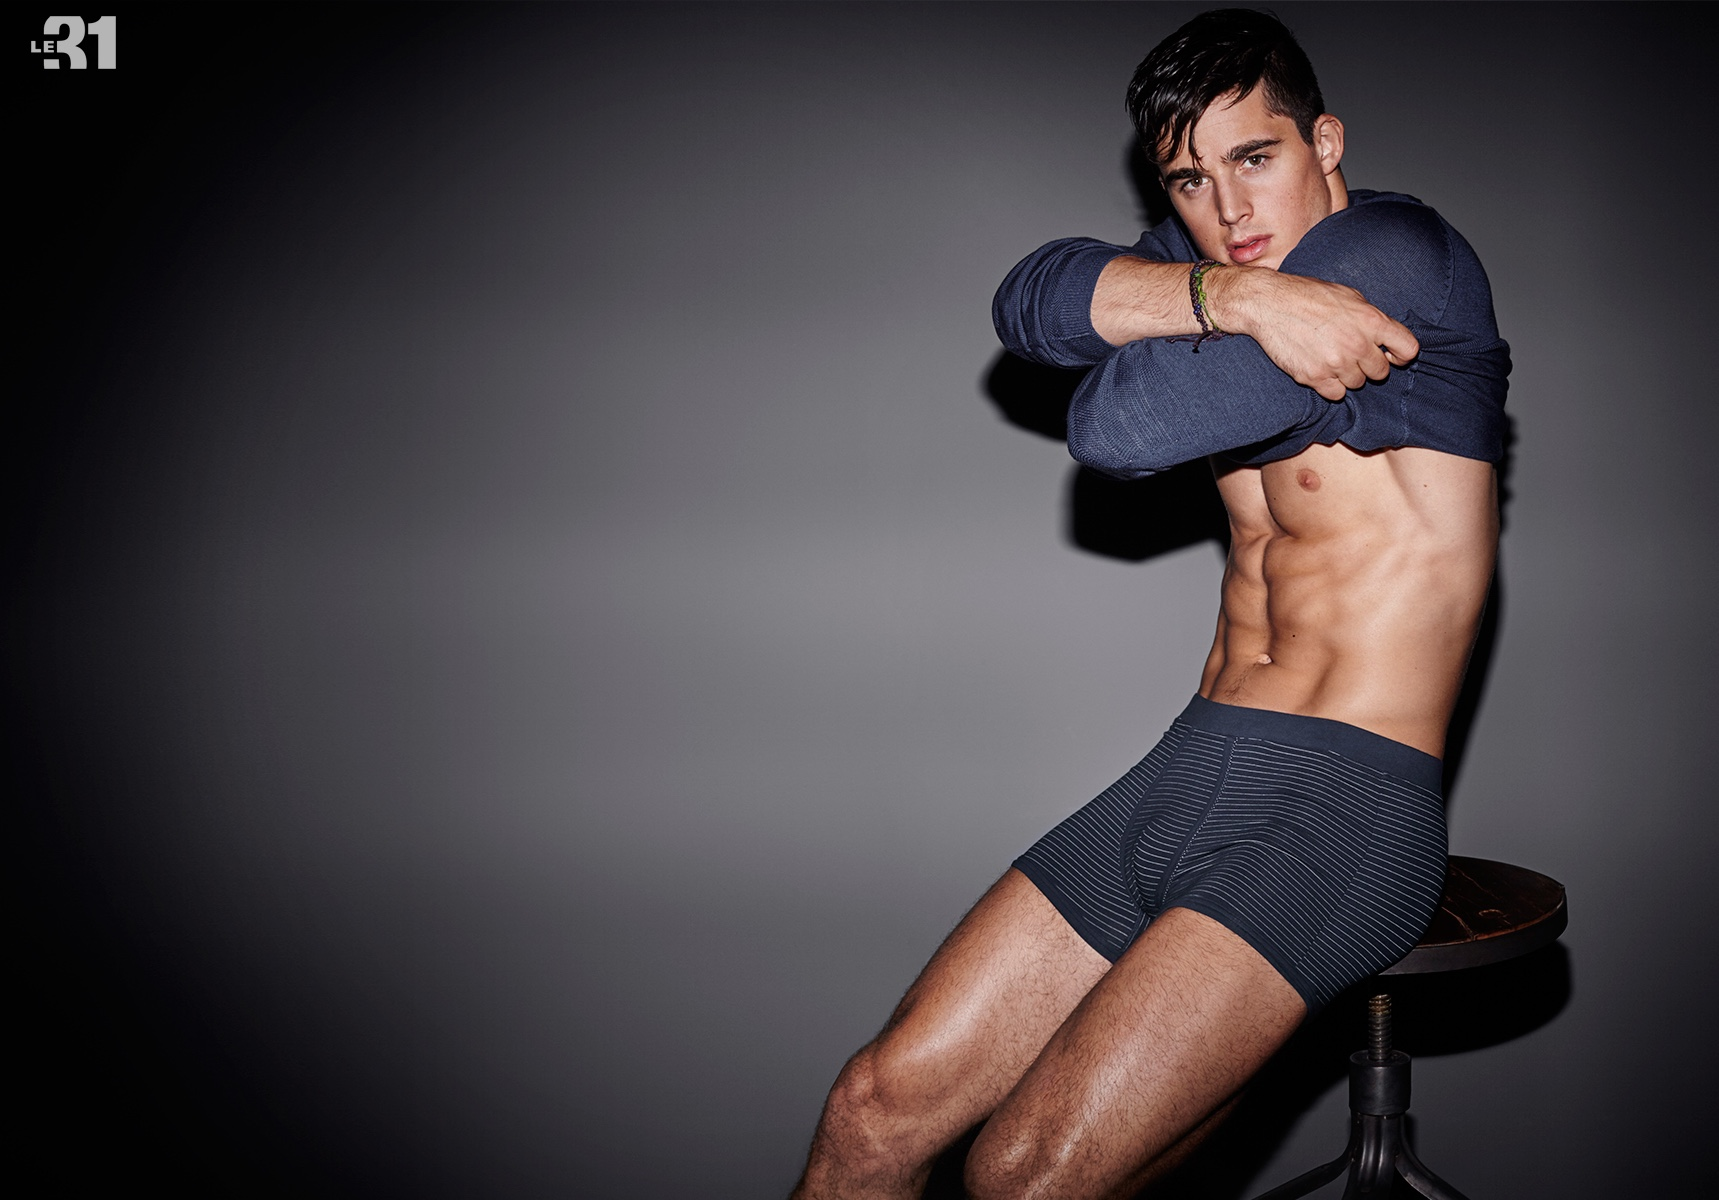 Male Model Male Model Calvin Klein Male Models Underwear Male | Black ...